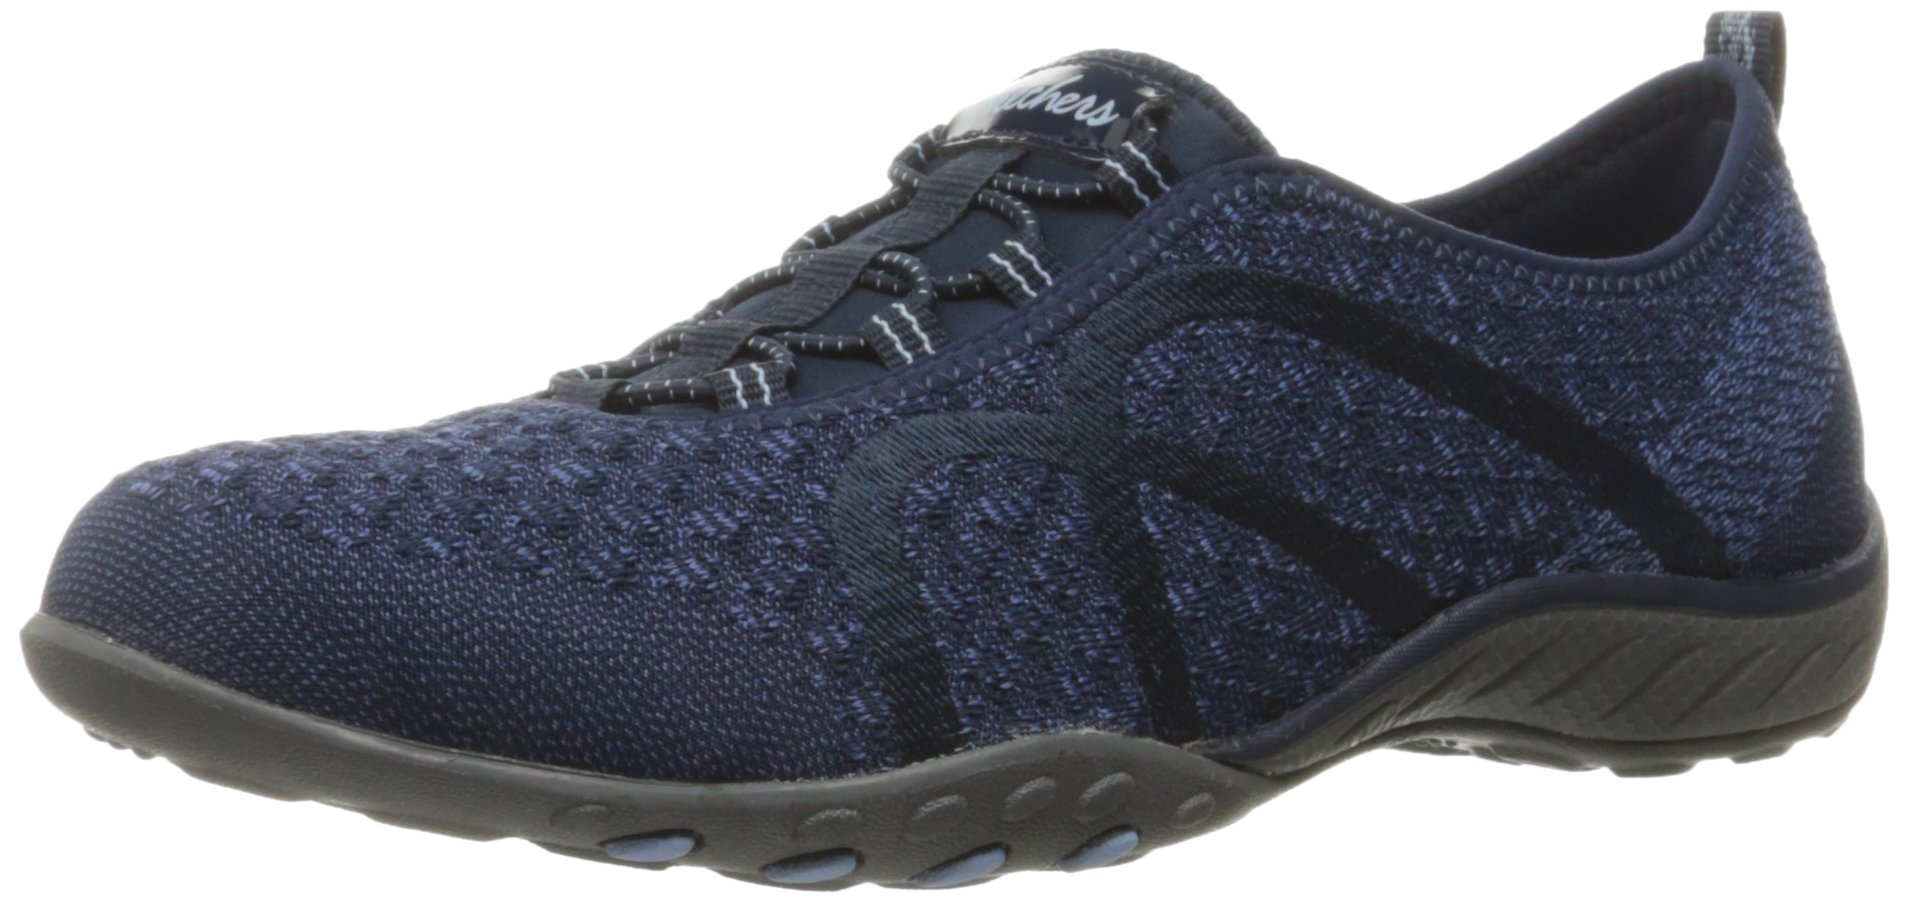 Skechers Sport Women's Breathe Easy Fortune Fashion Sneaker,Navy Knit,5.5 M US